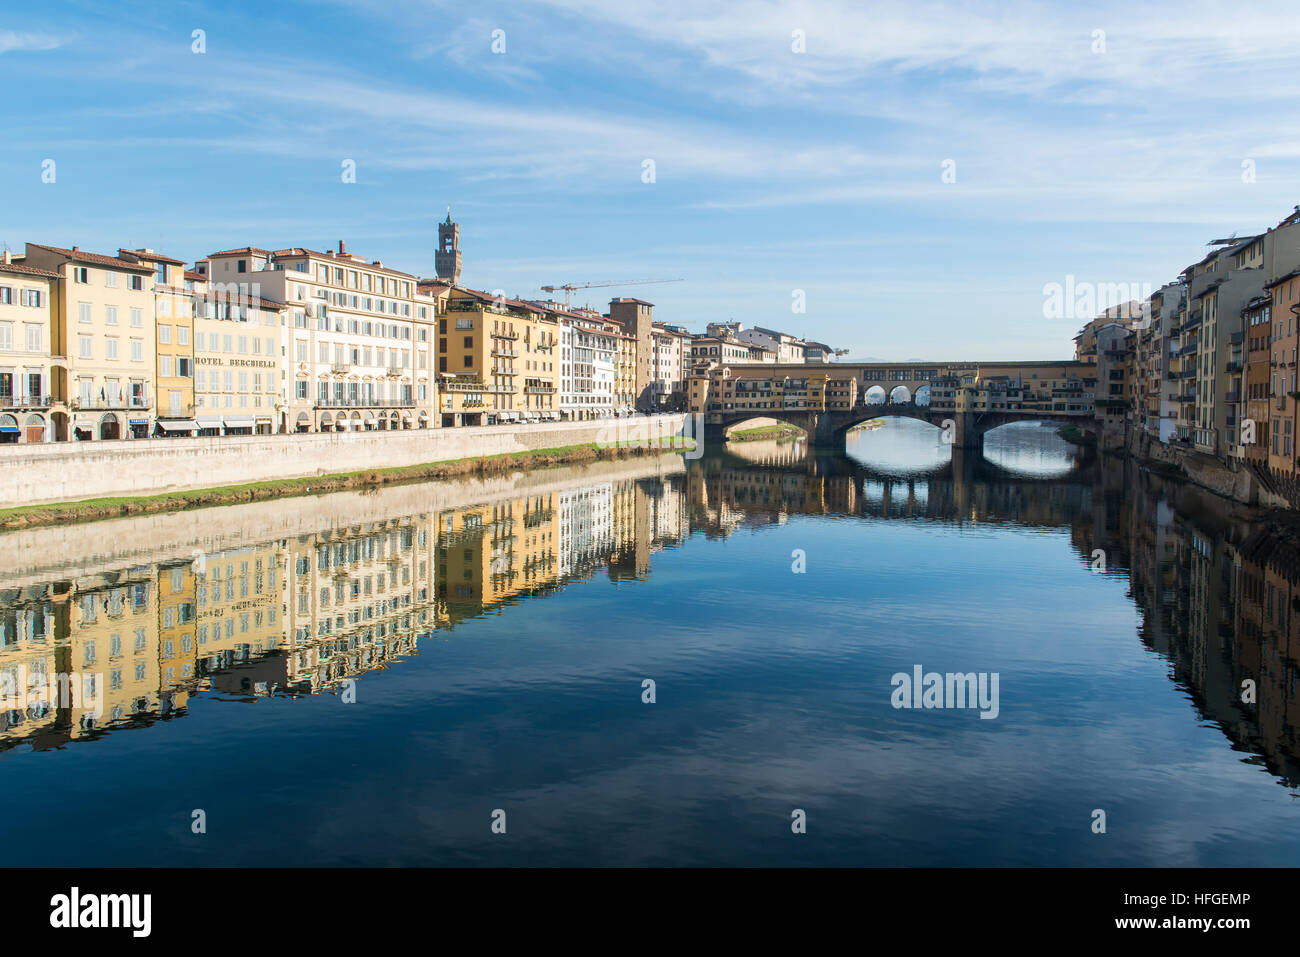 Ponte Vecchio bridge on the Arno river in Florence, Italy - Stock Image